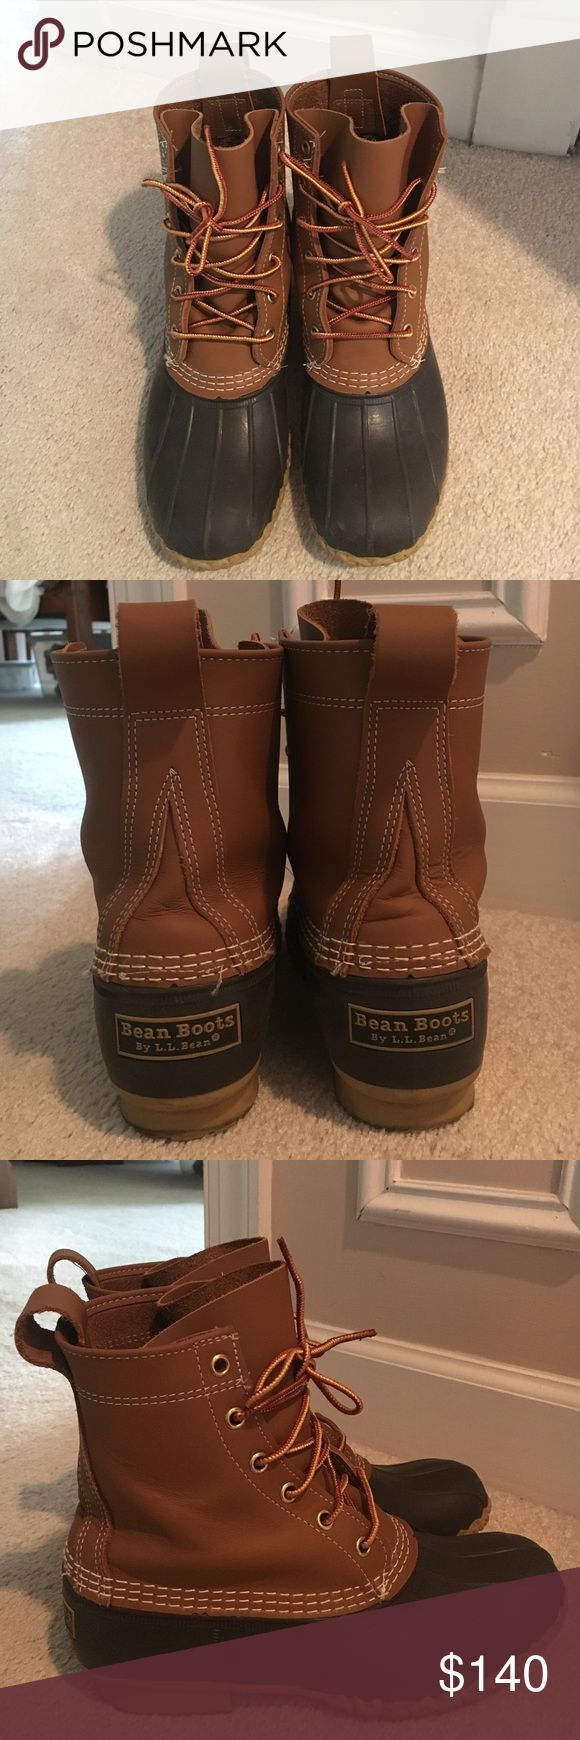 L.L. Bean Boots Women's size 8 L.L. BEAN BOOTS!! Perfect gift for the holidays!! They usually end up on back order but these will arrive before Christmas! In perfect condition NEVER WORN!!!!!! Only tried on, in perfect condition! Size 8 but can fit size 7 L.L. Bean Shoes Combat & Moto Boots